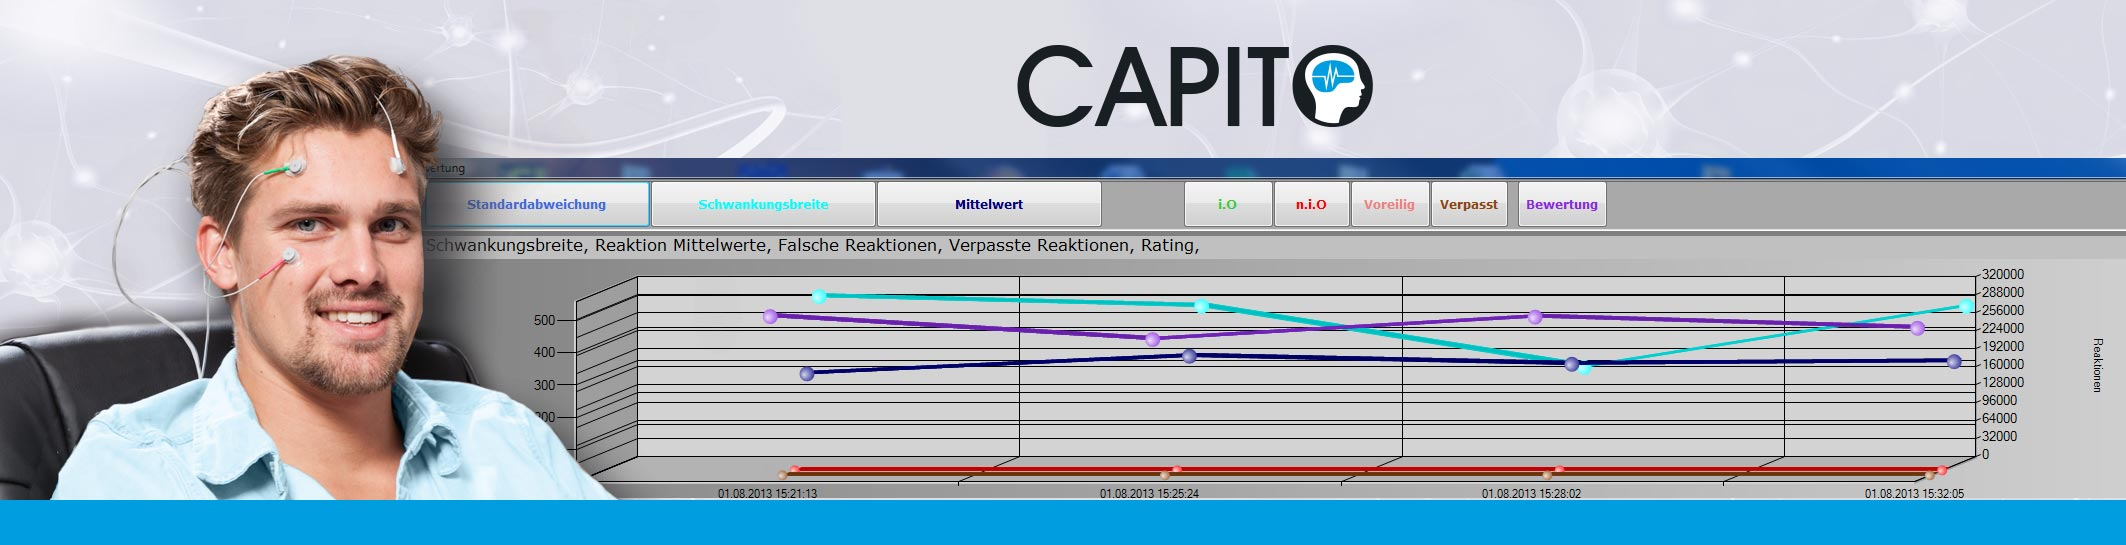 CAPITO- Tests für Neurofeedback, Biofeedback, Coaching